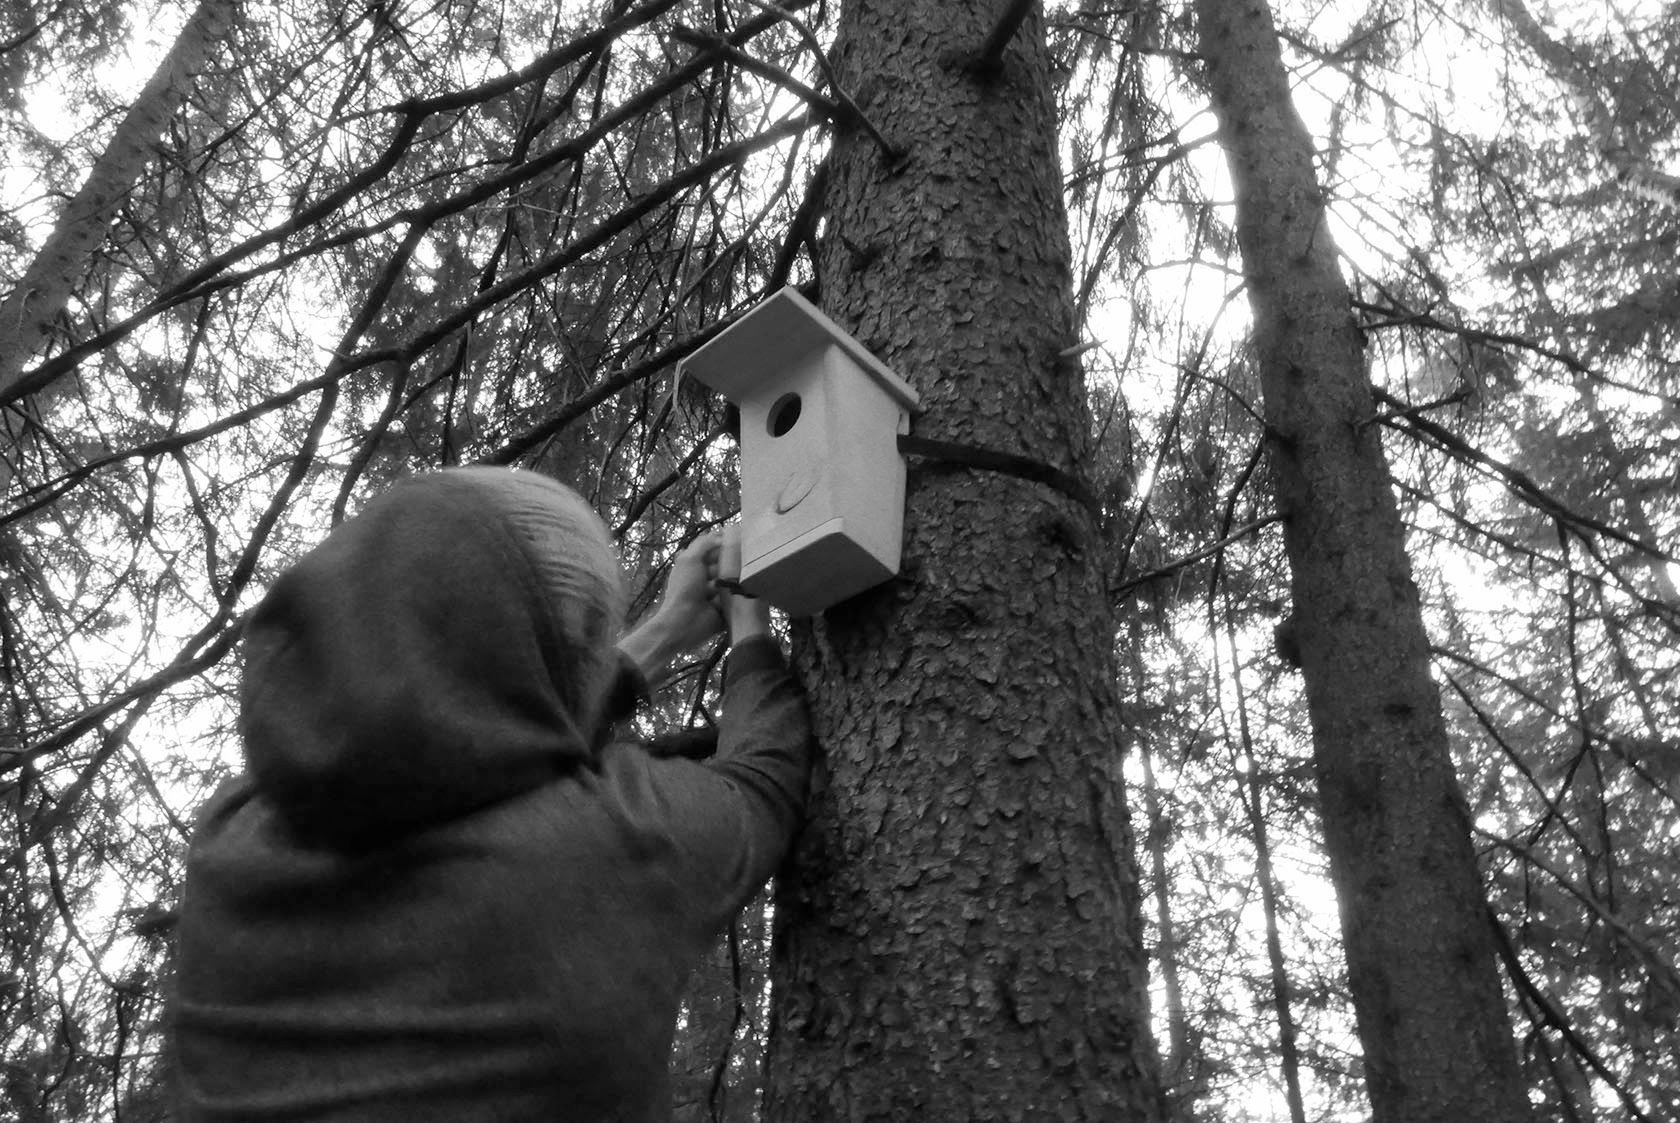 Nature Calling - setting up the birdhouse